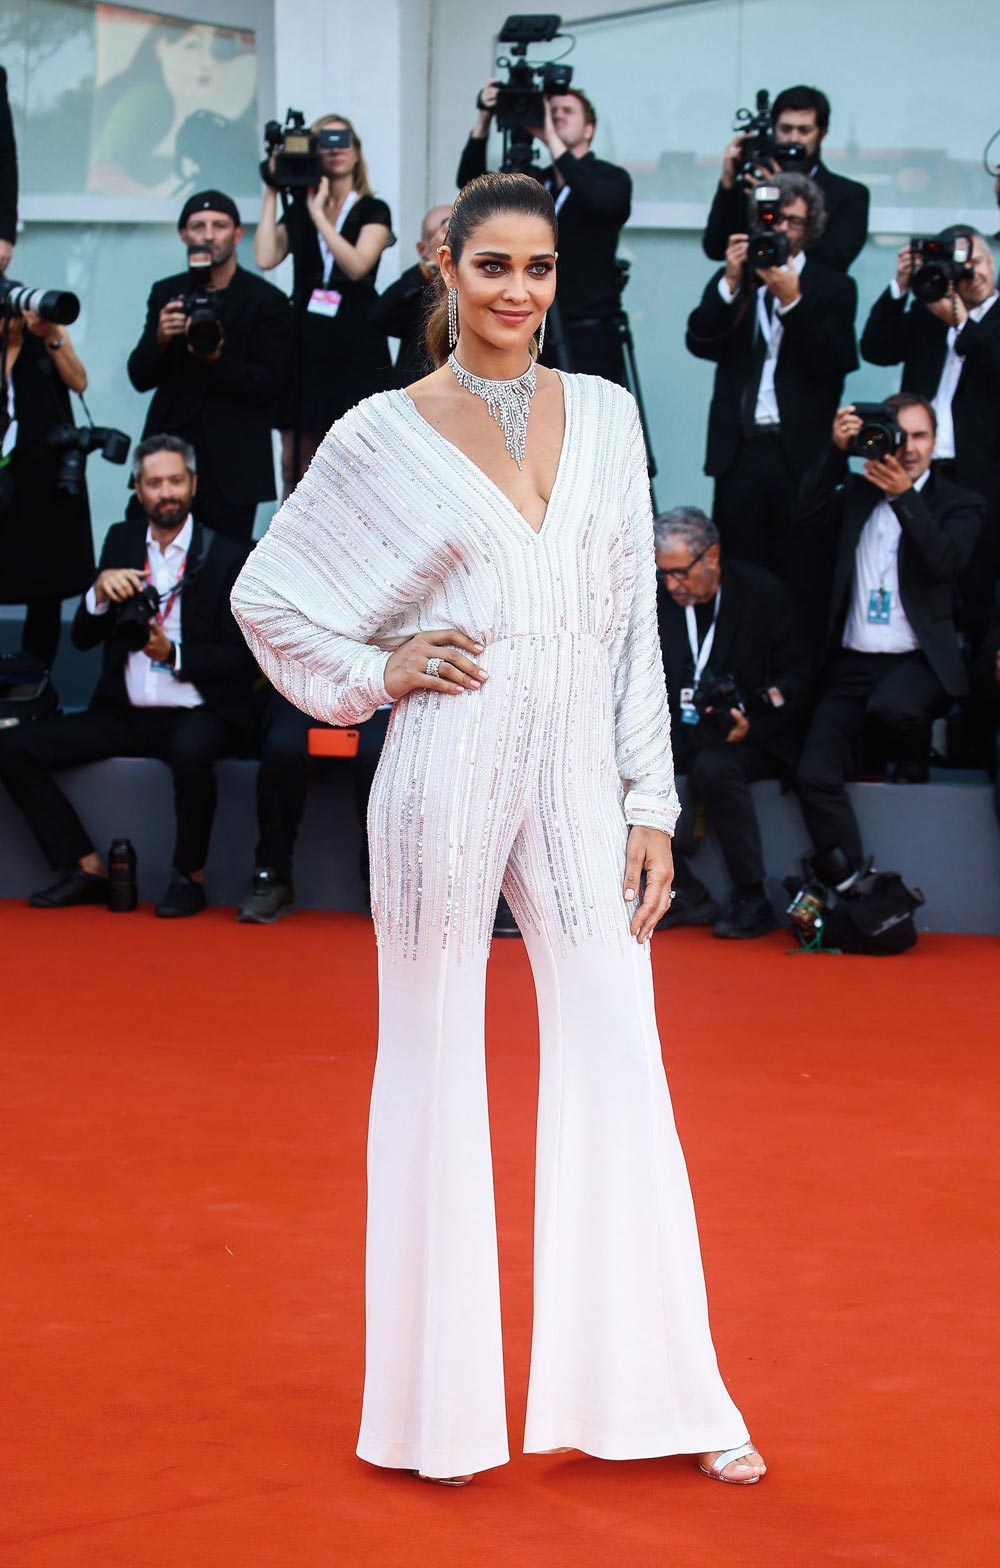 Venezia 2018 - Ana Beatriz Barros - Hair & Makeup Massimo Serini